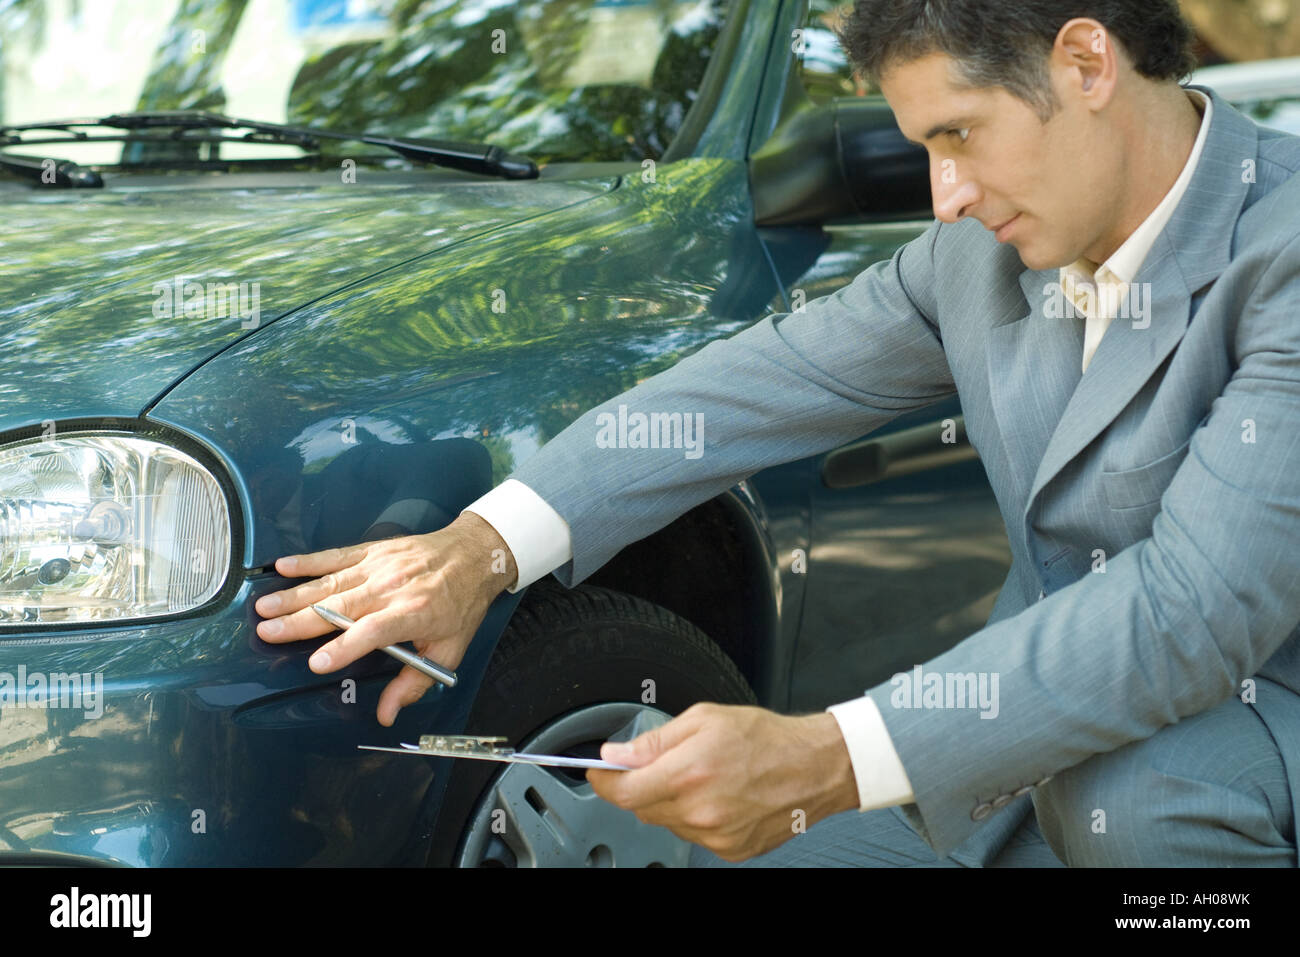 Mature man in suit inspecting car - Stock Image